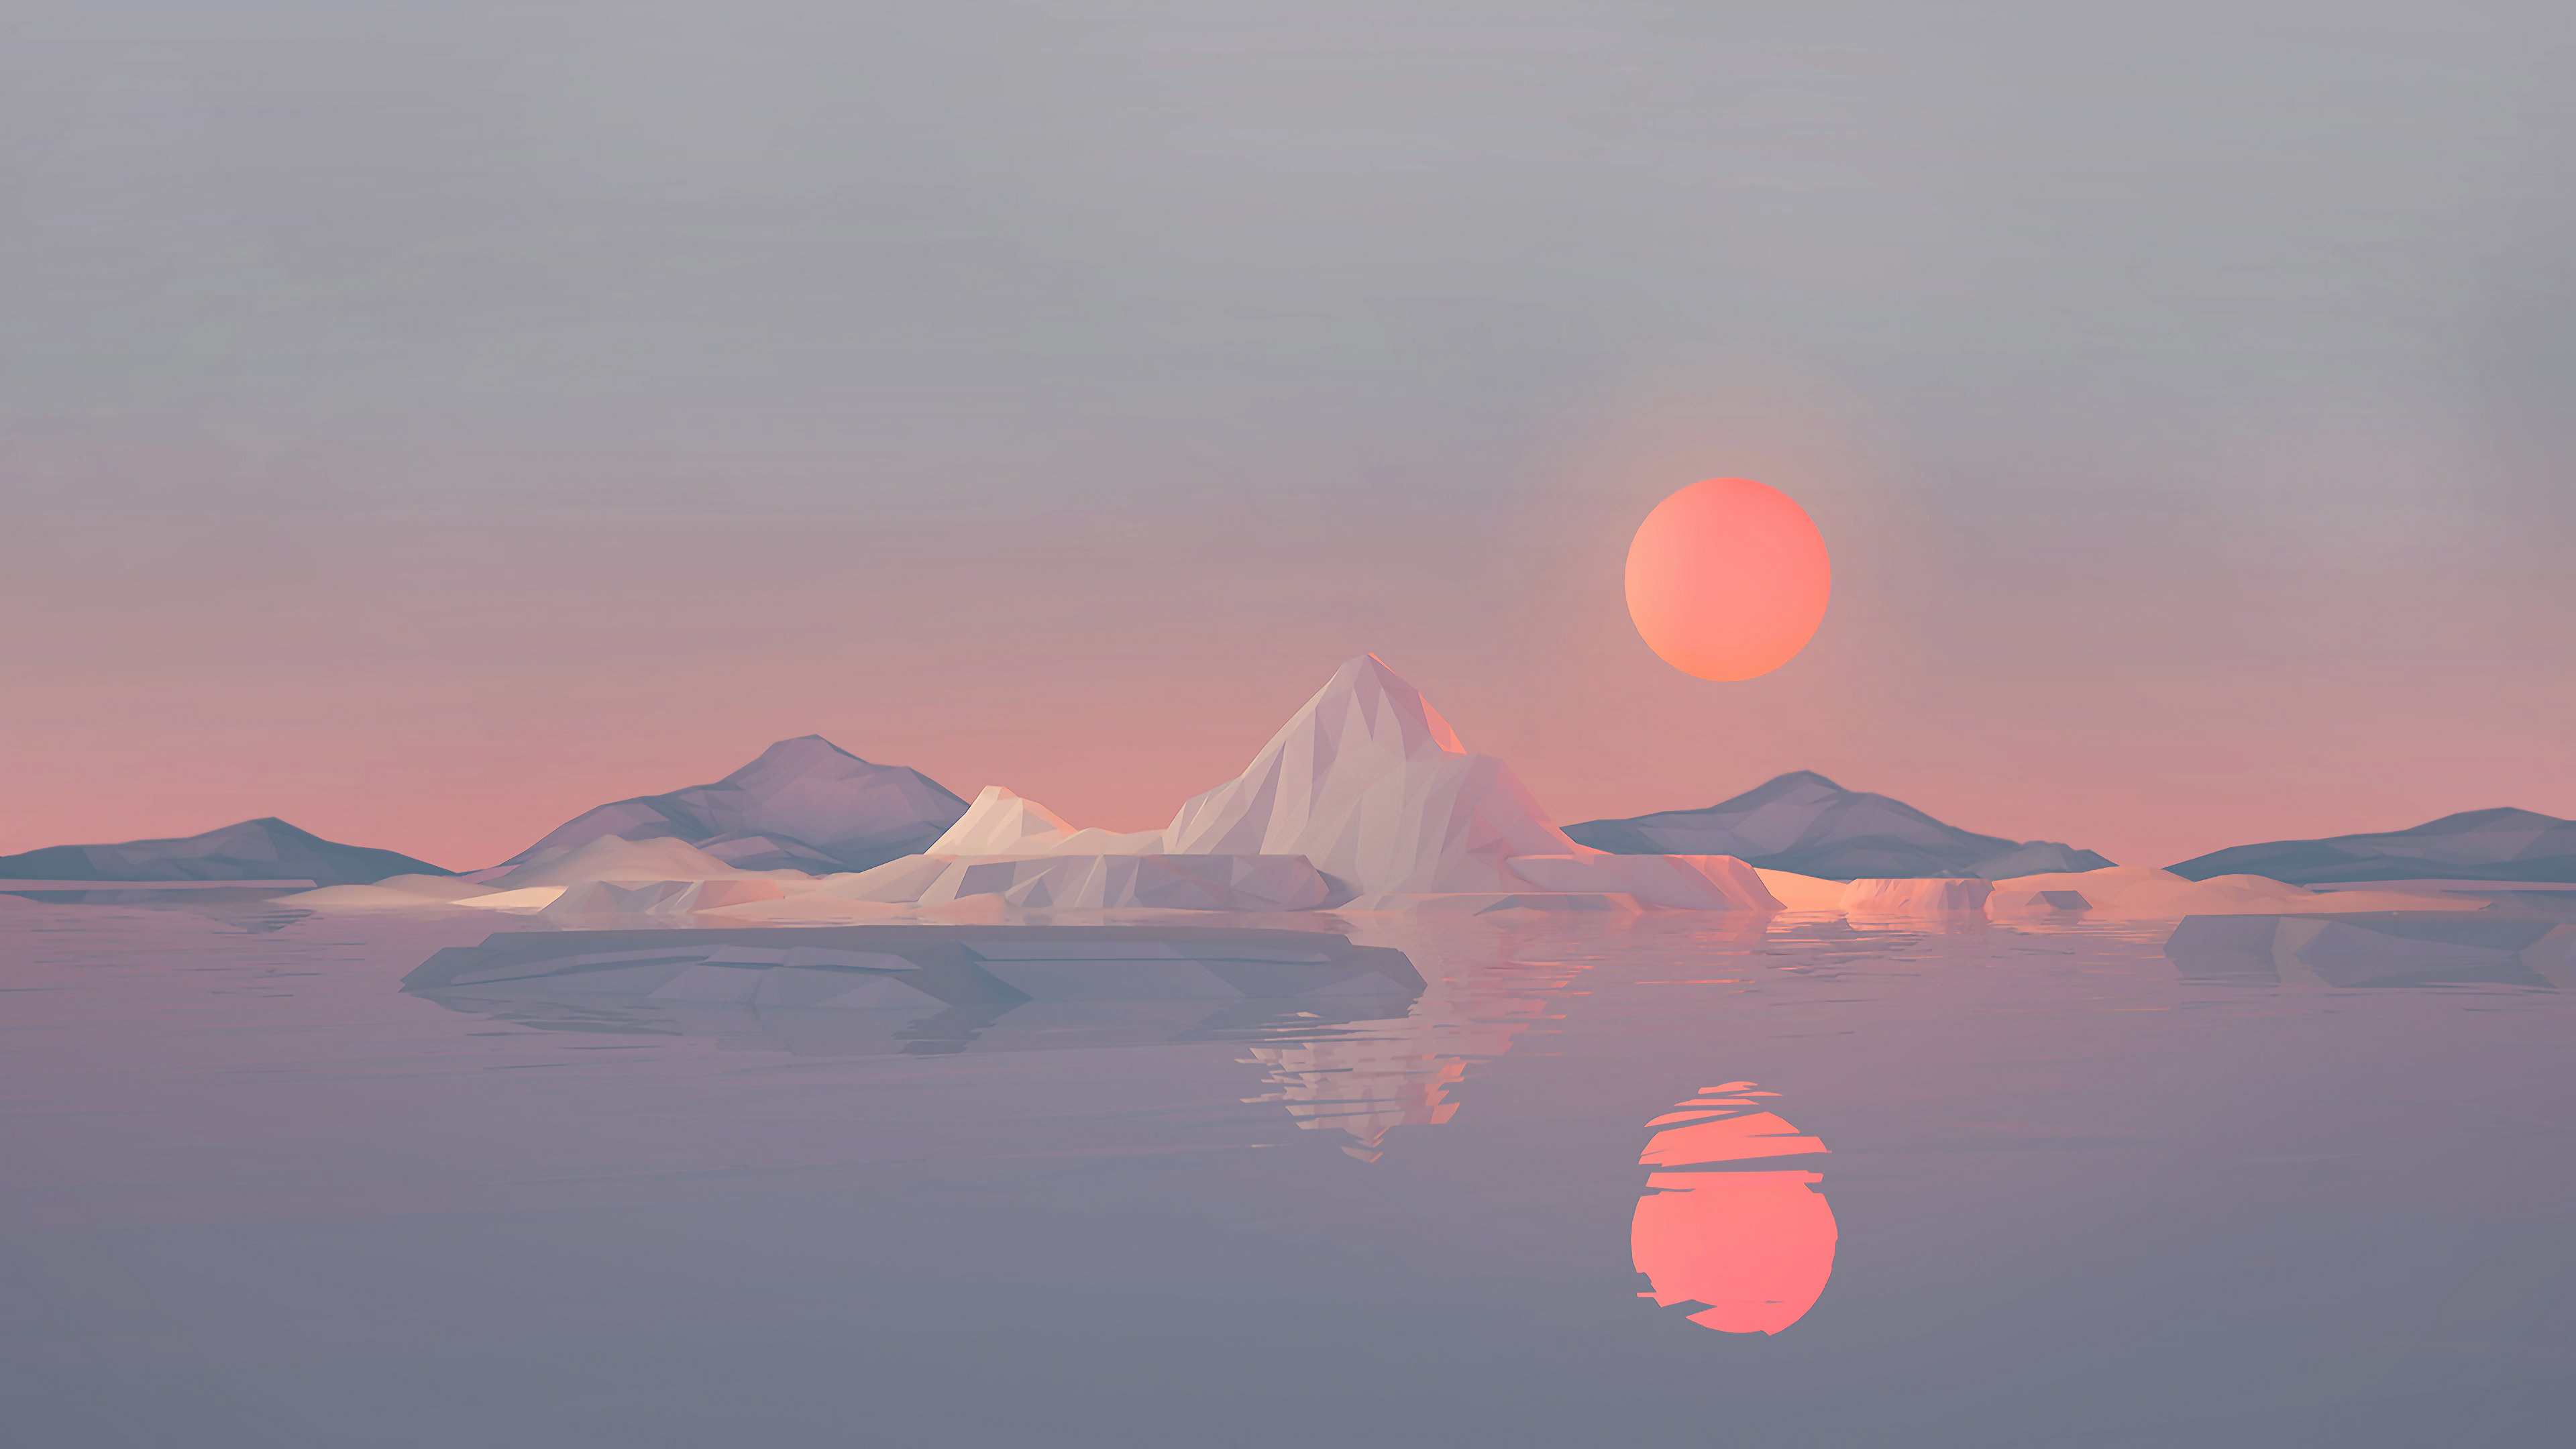 Iceberg Minimalist 4k Hd Artist 4k Wallpapers Images